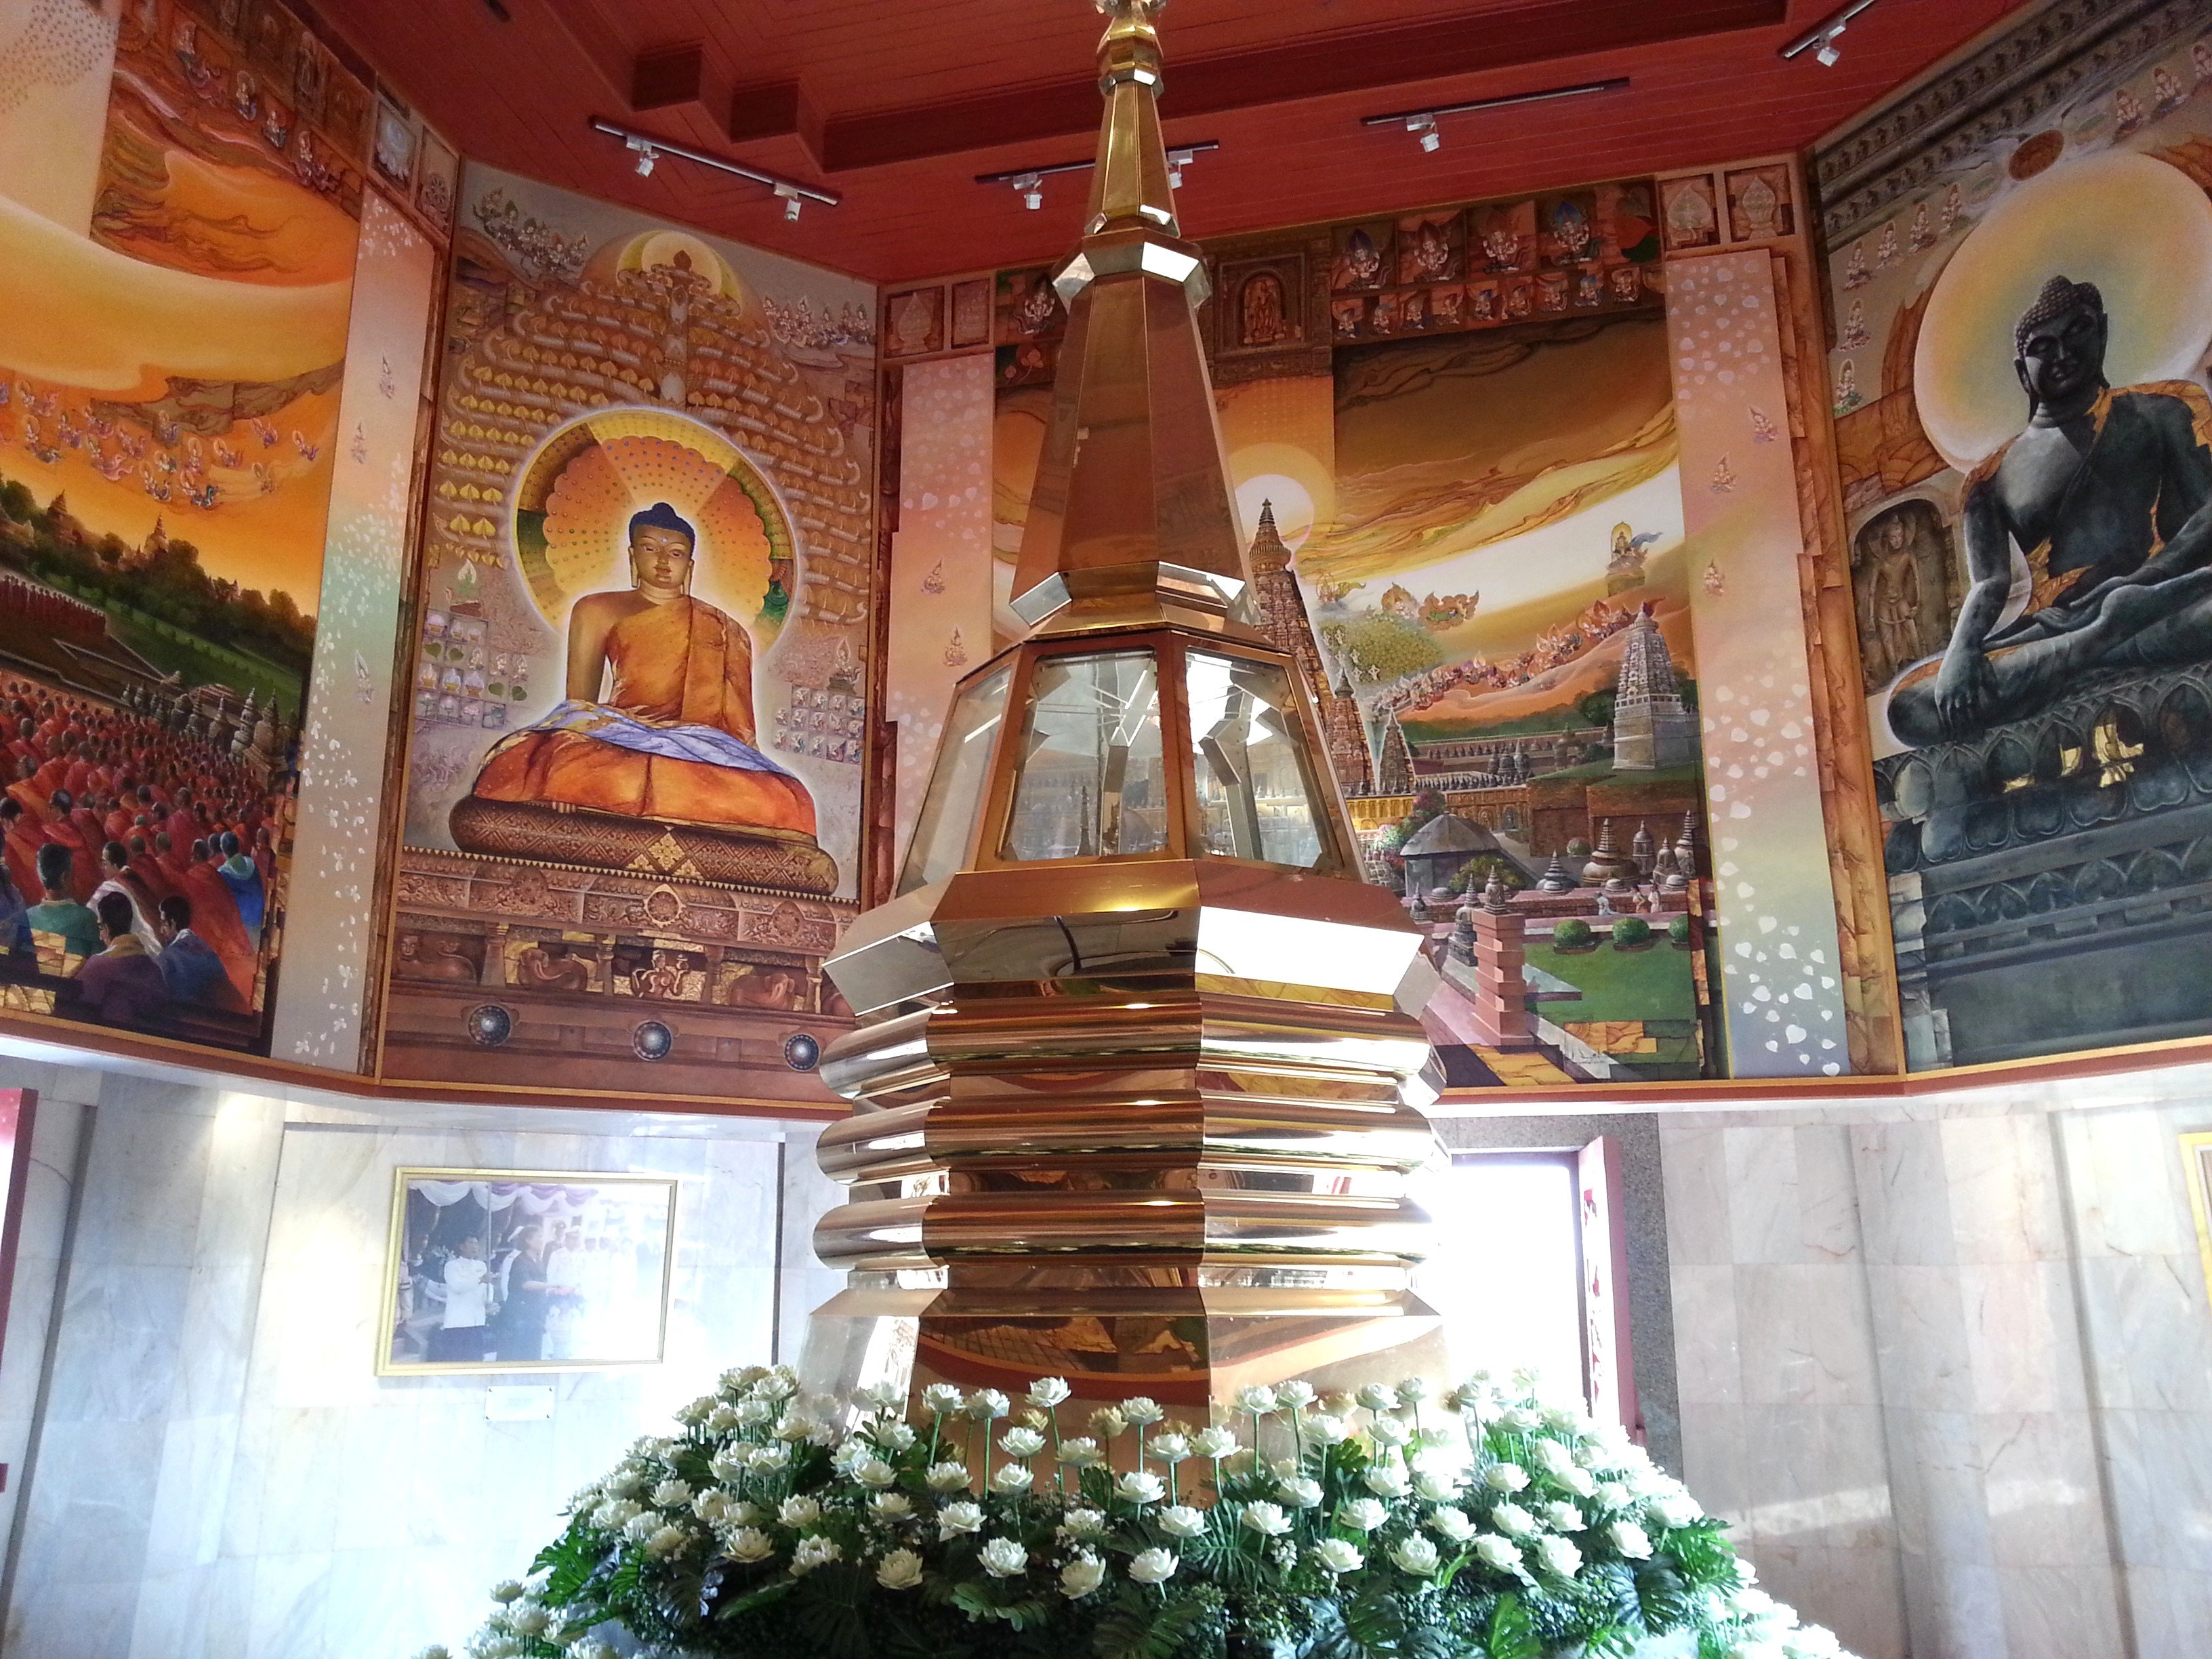 Buddha shrine at Wat Pothisomphon